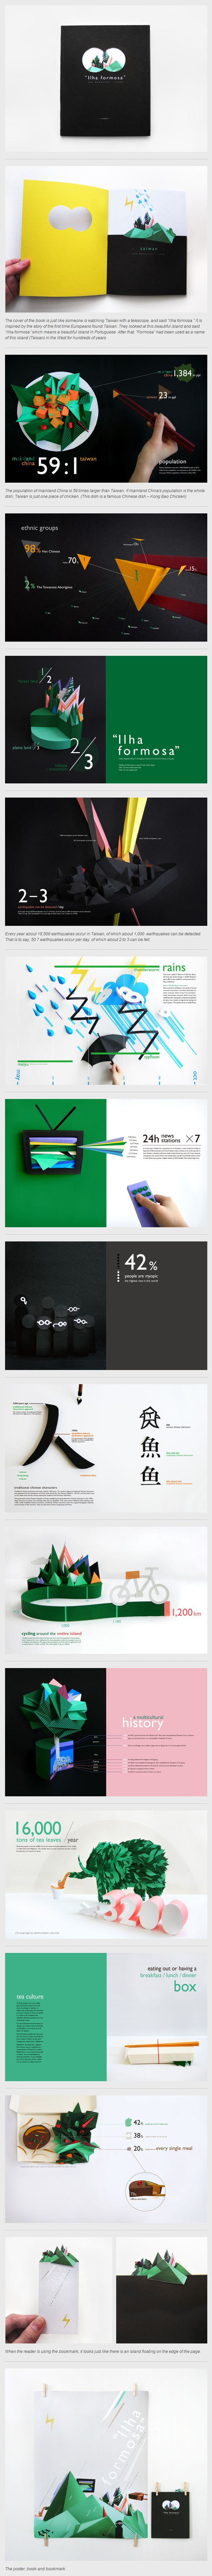 Ilha Formosa imagery inspiration. Gorgeous use of real objects and folded paper to show simple shapes, like a 3d infographic.